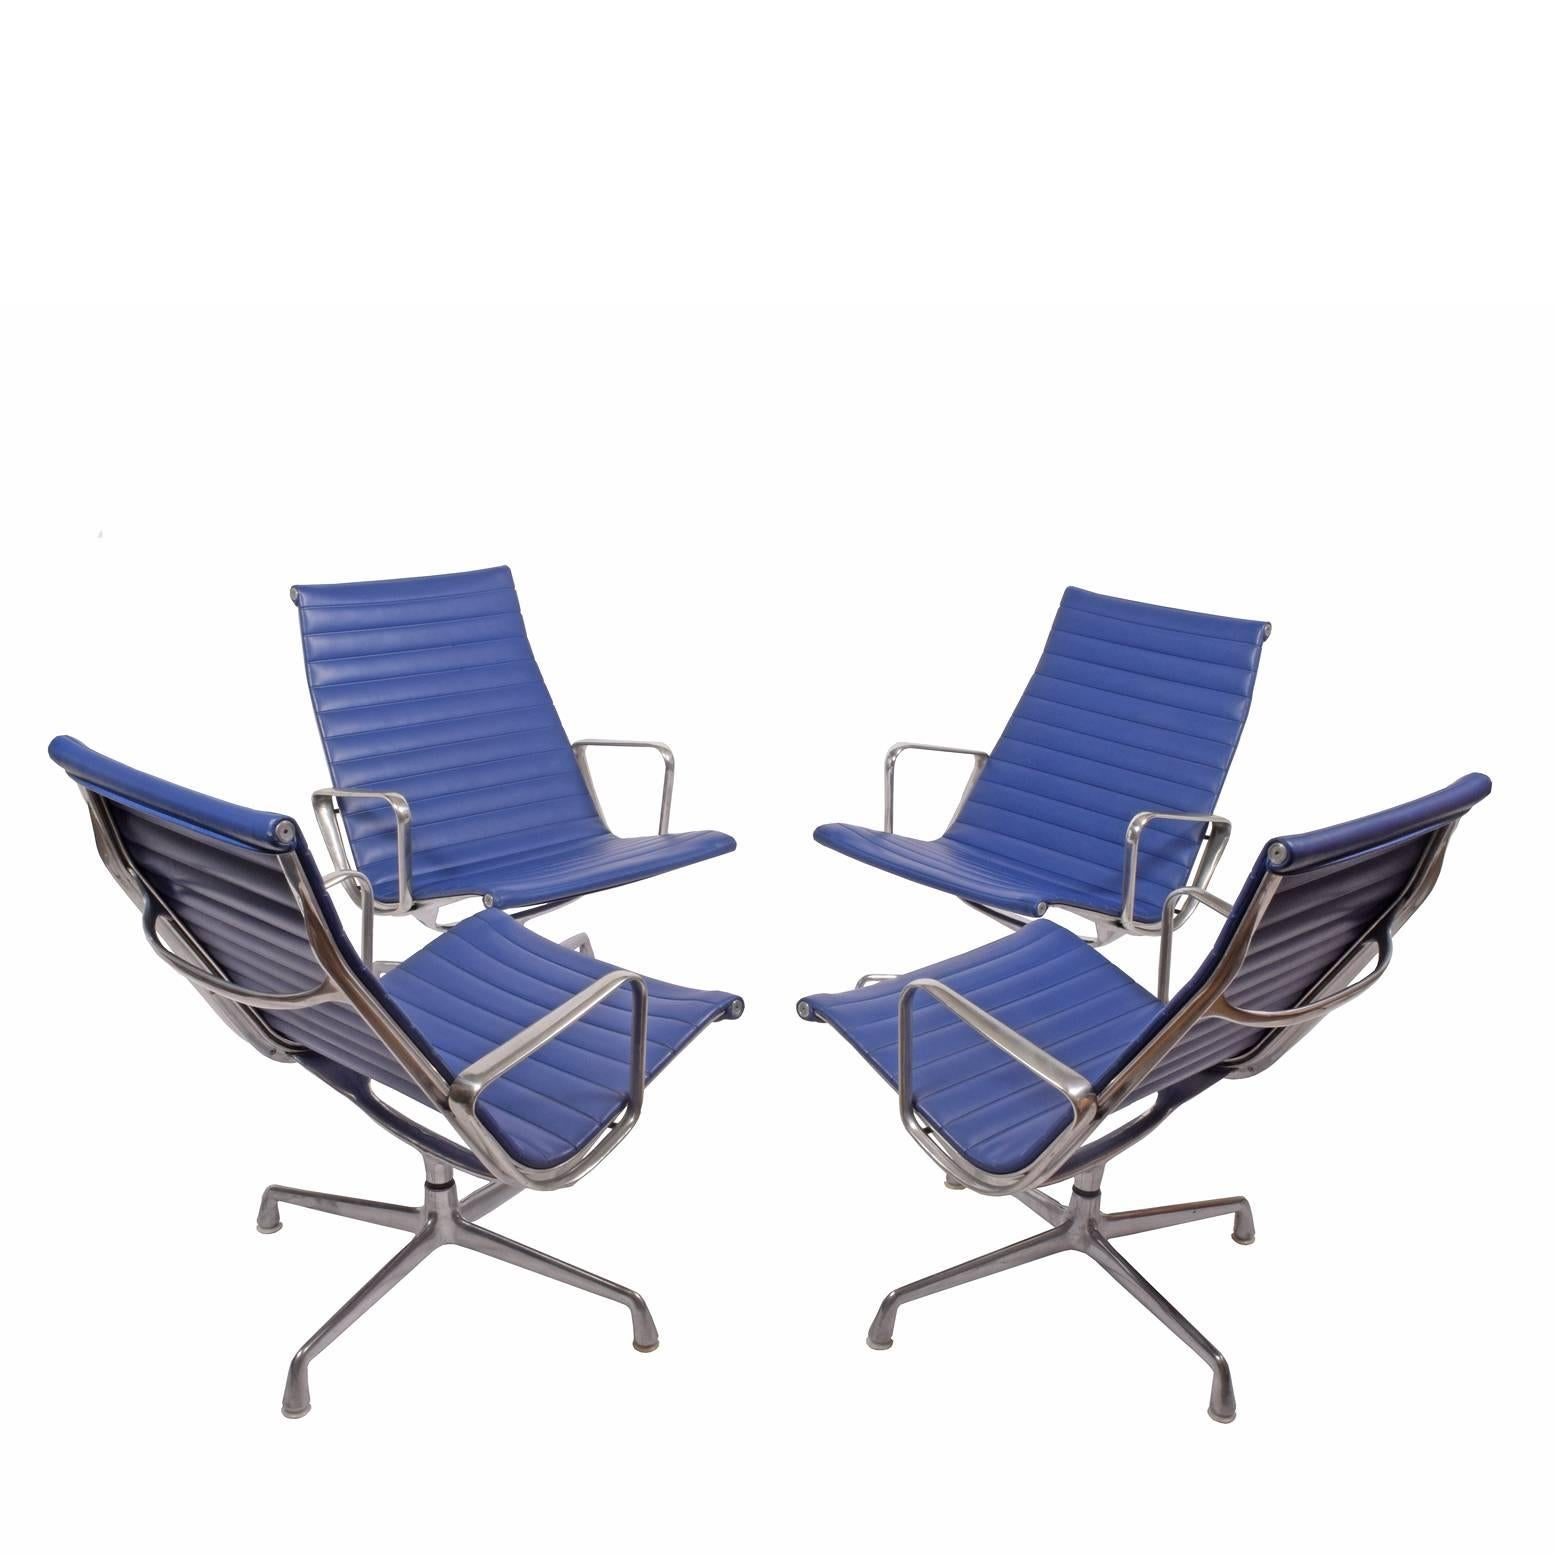 Only two Aluminium Group Chairs by Charles Eames for Herman Miller